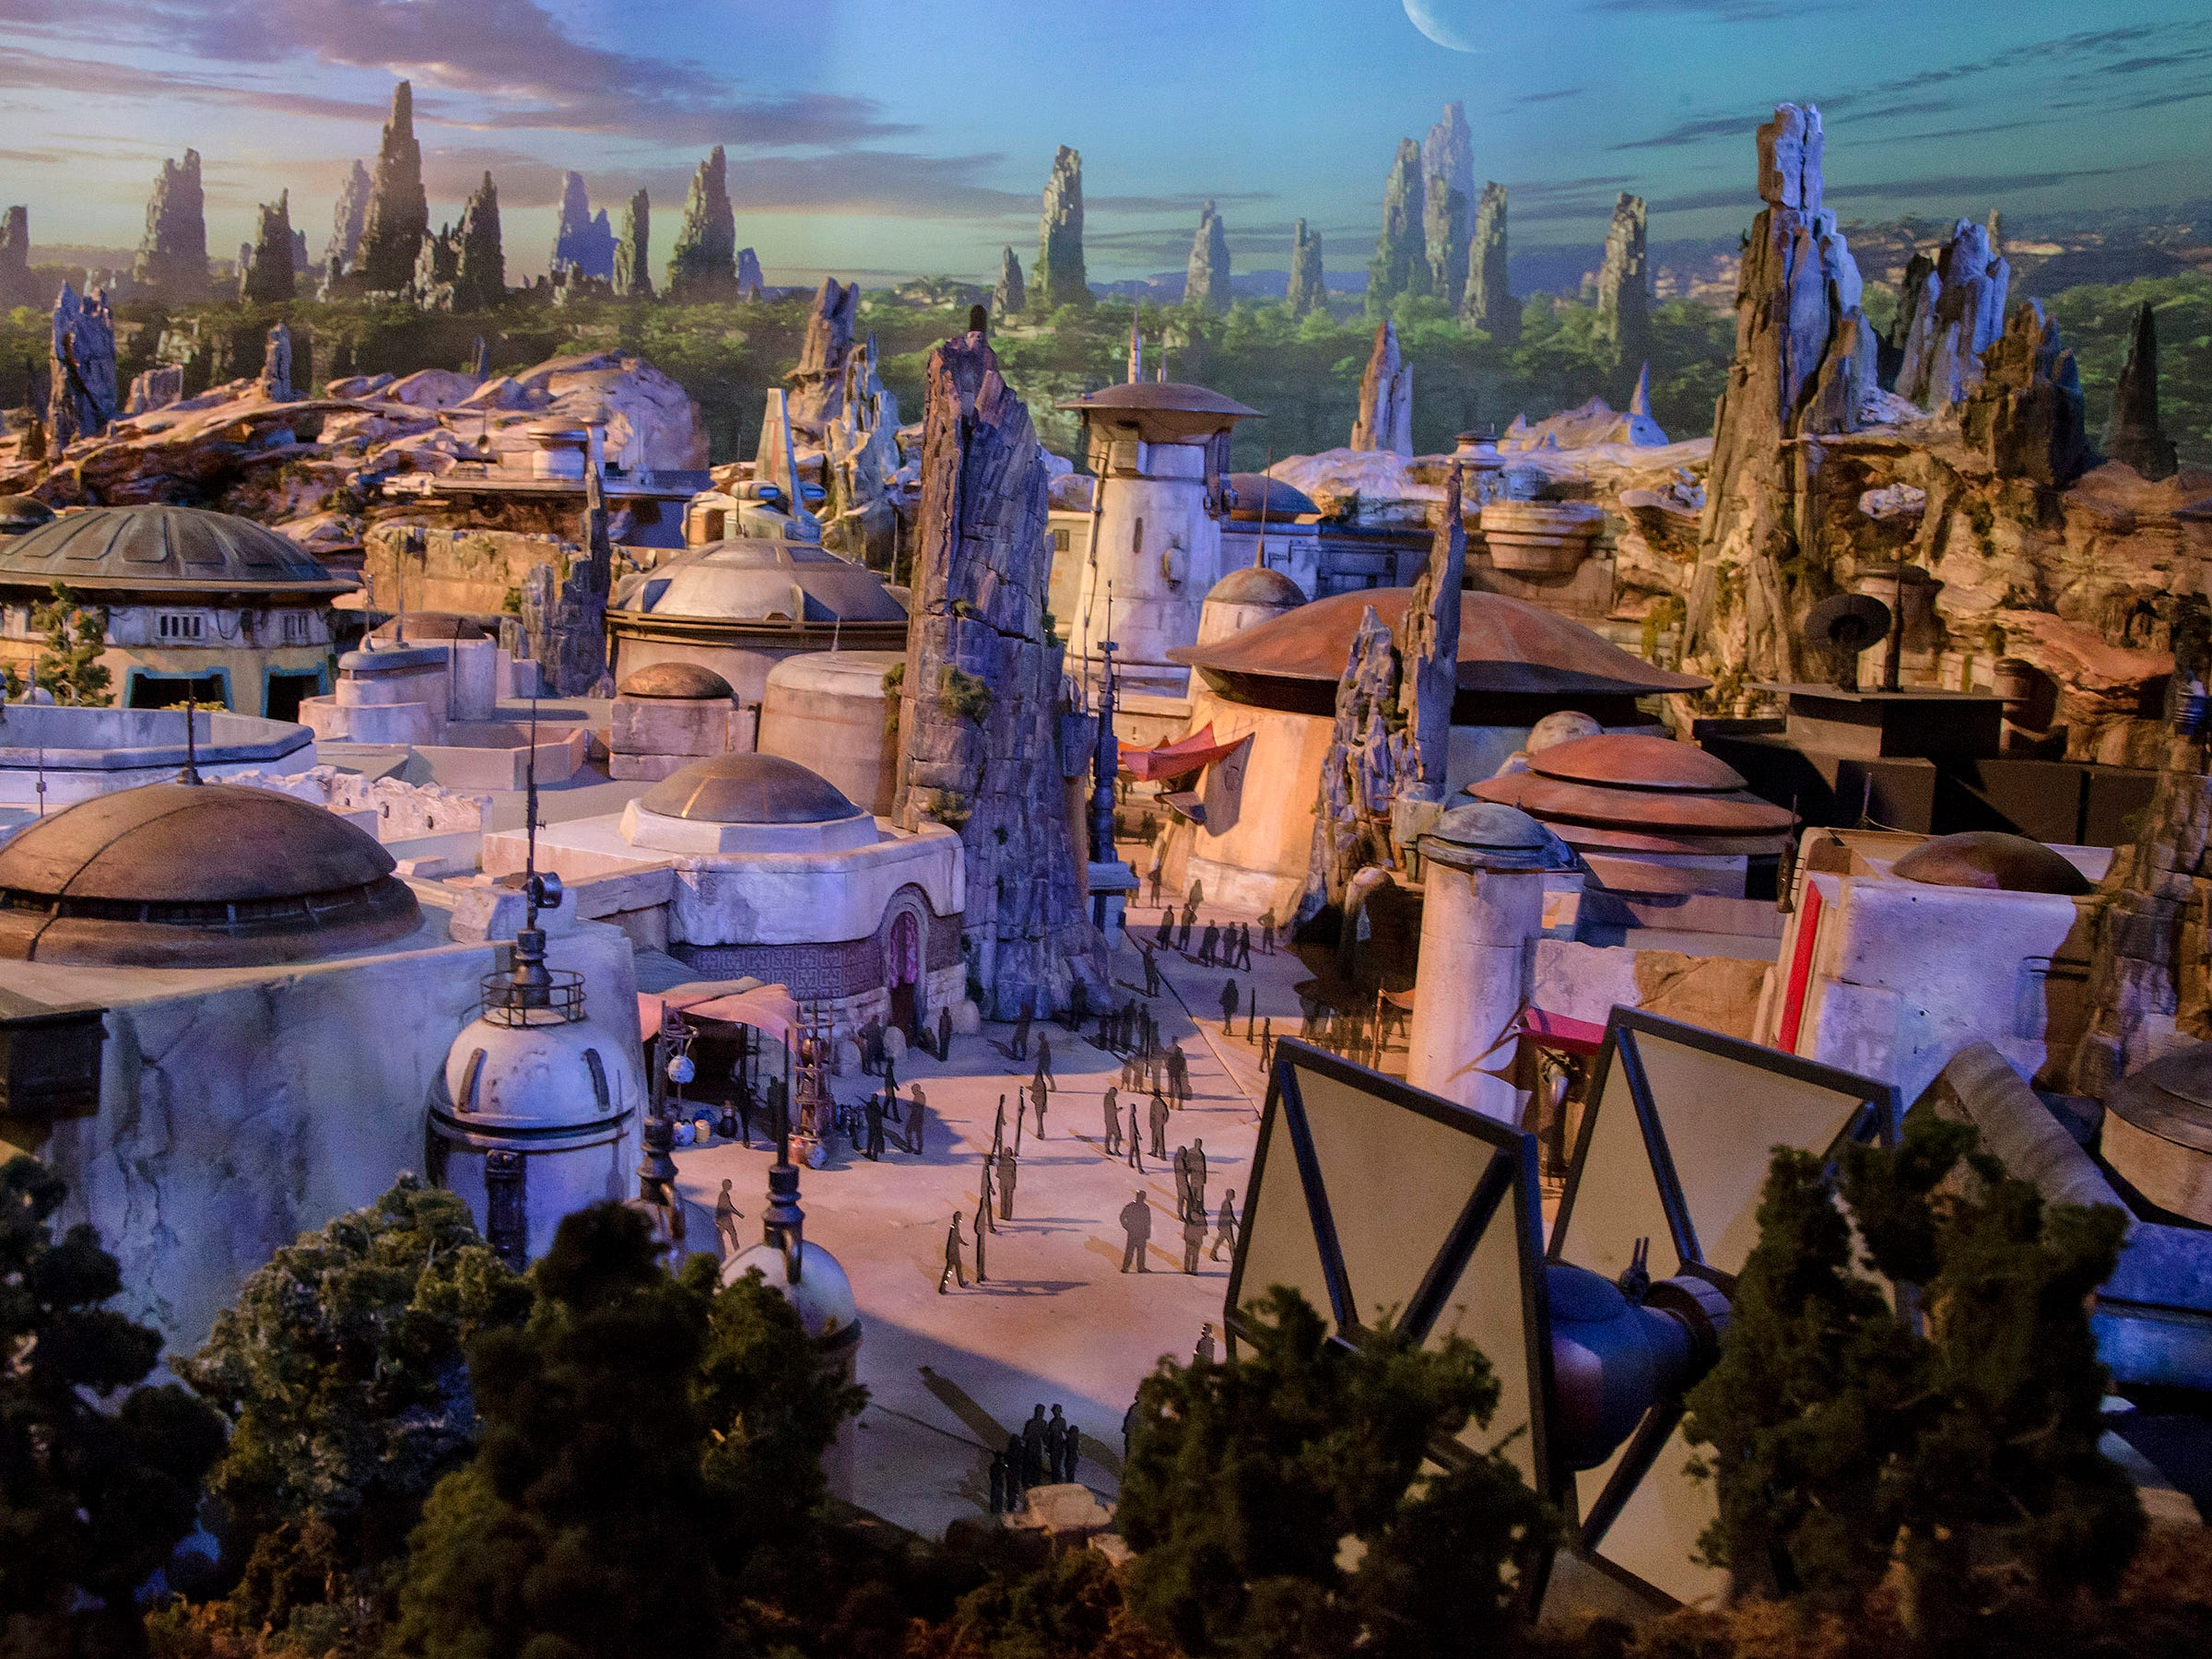 Star Wars: Galaxy's Edge, opening May 31, 2019, at Disneyland, is set in Black Spire Outpost, named for one of the petrified trees that dot the landscape.